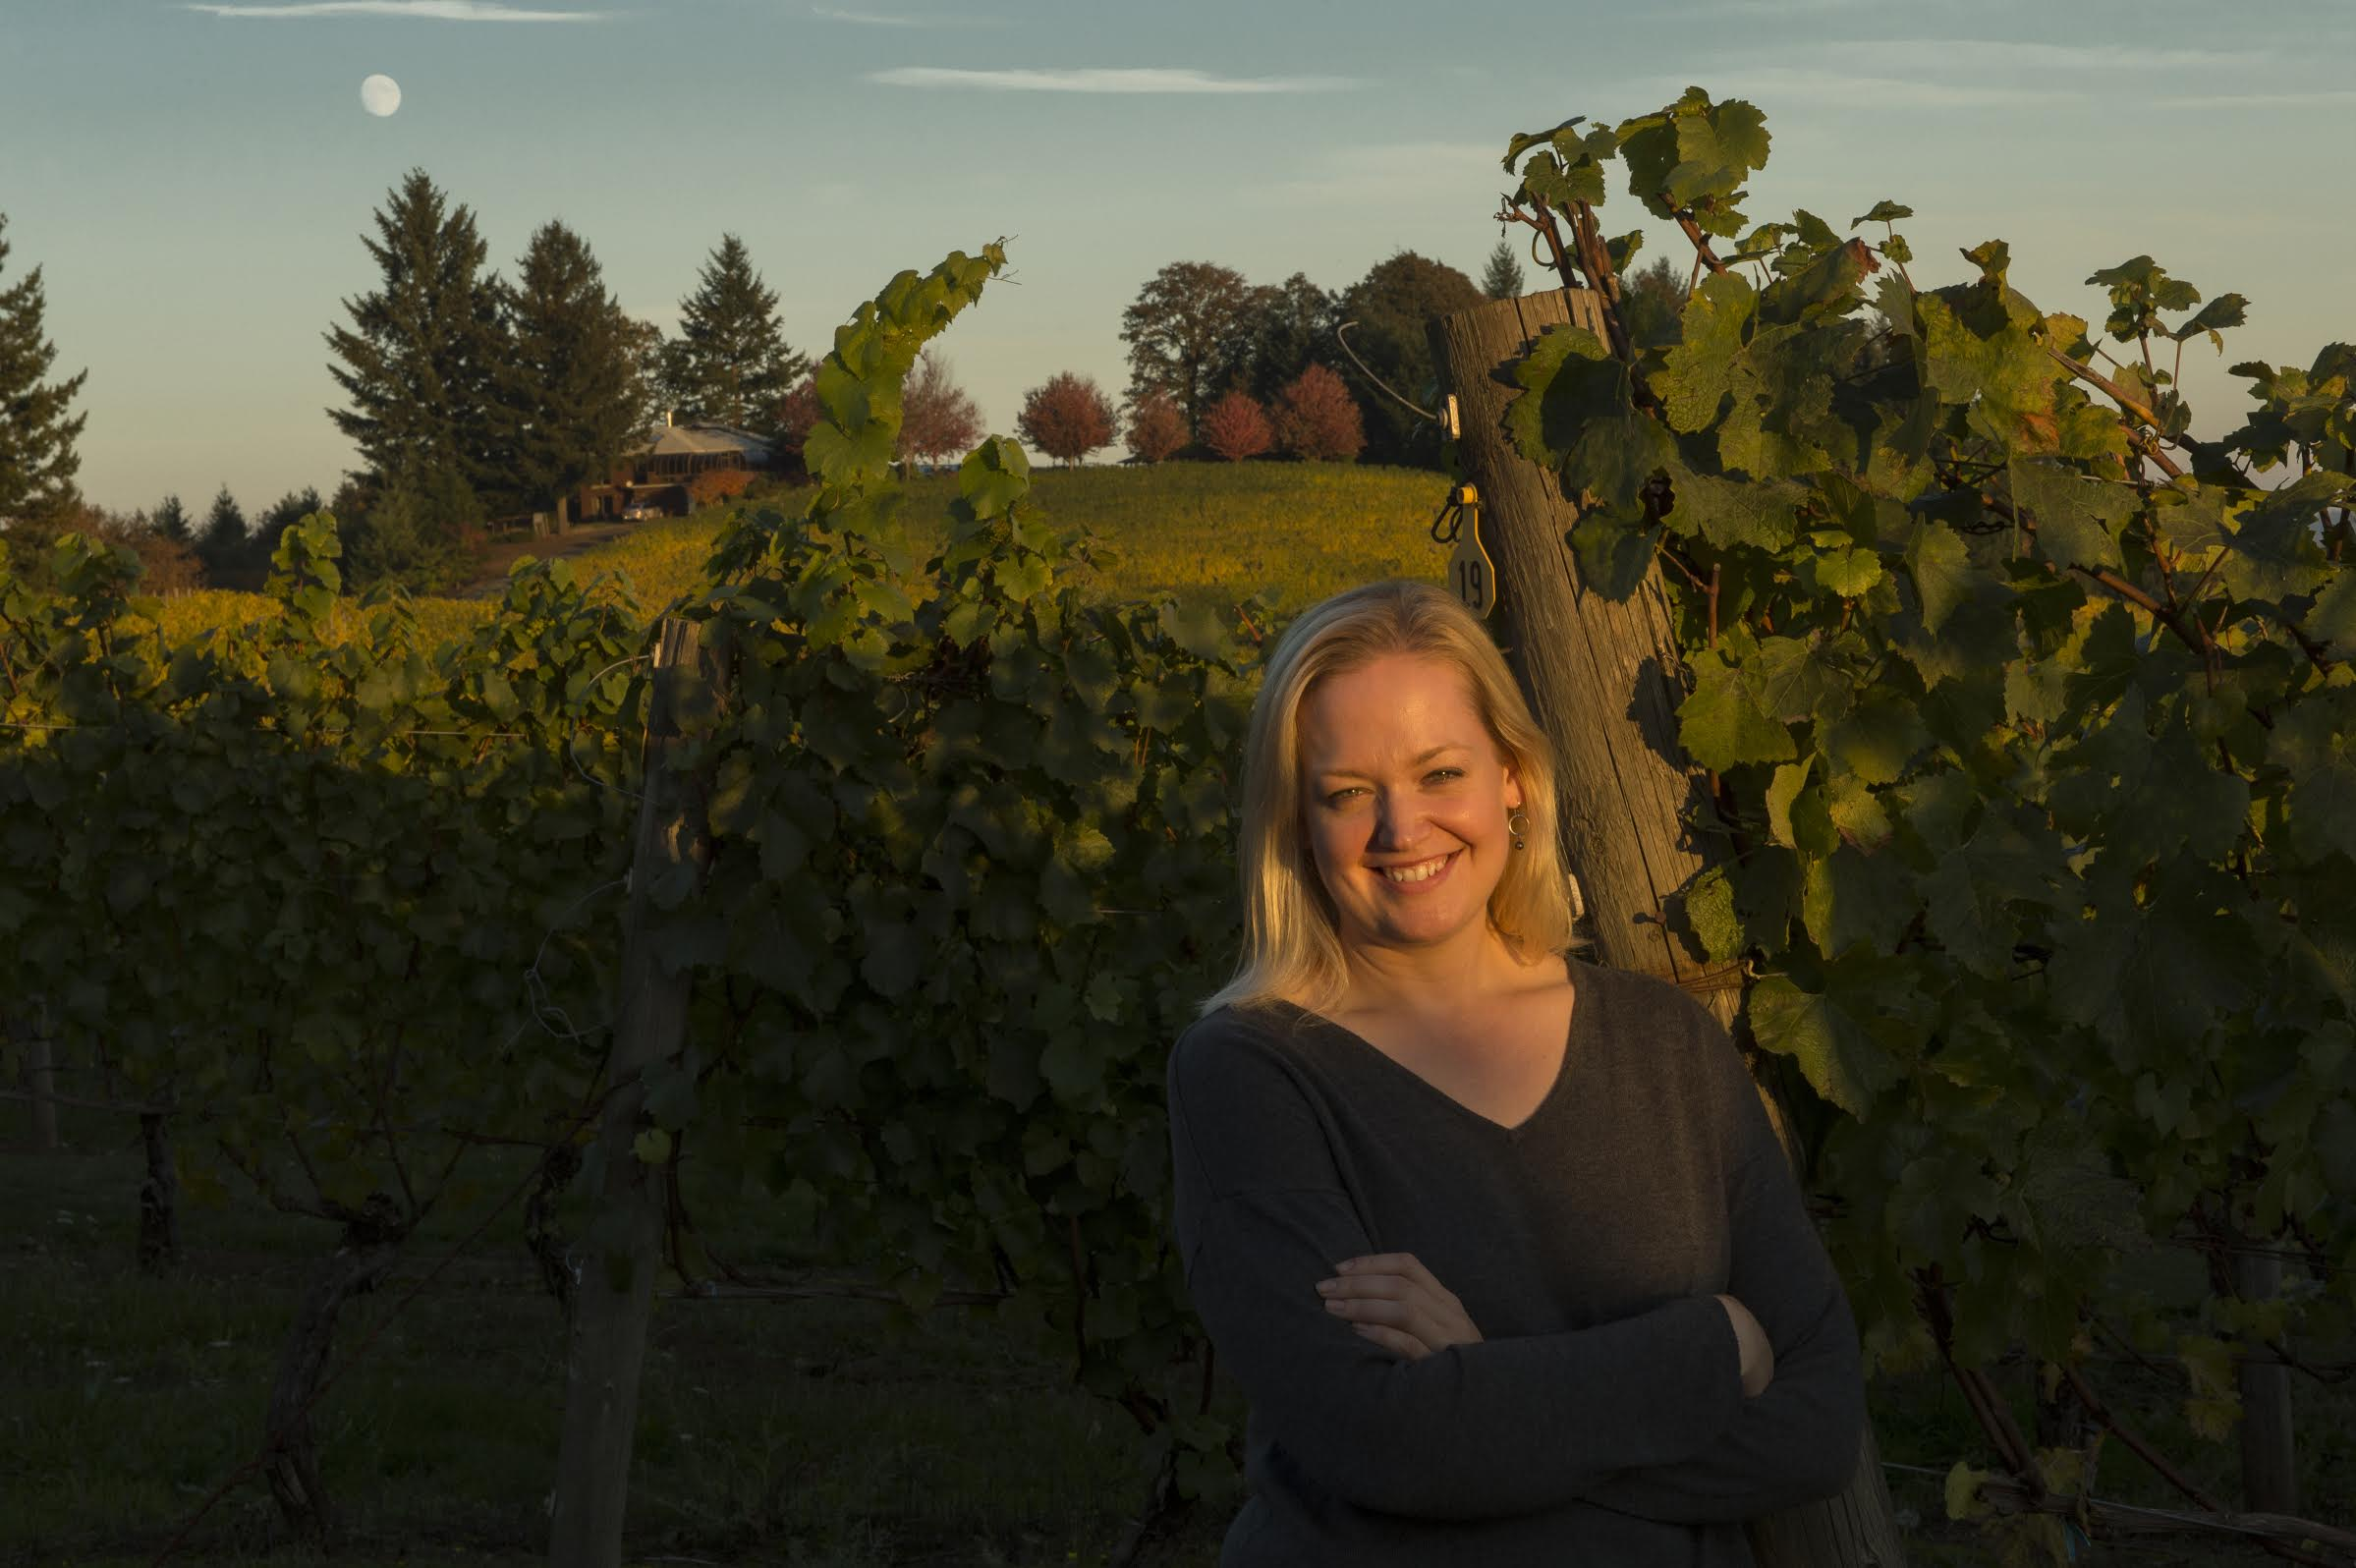 Kim Kramer crafts some beautiful wines for her family winery, Kramer Vineyards.